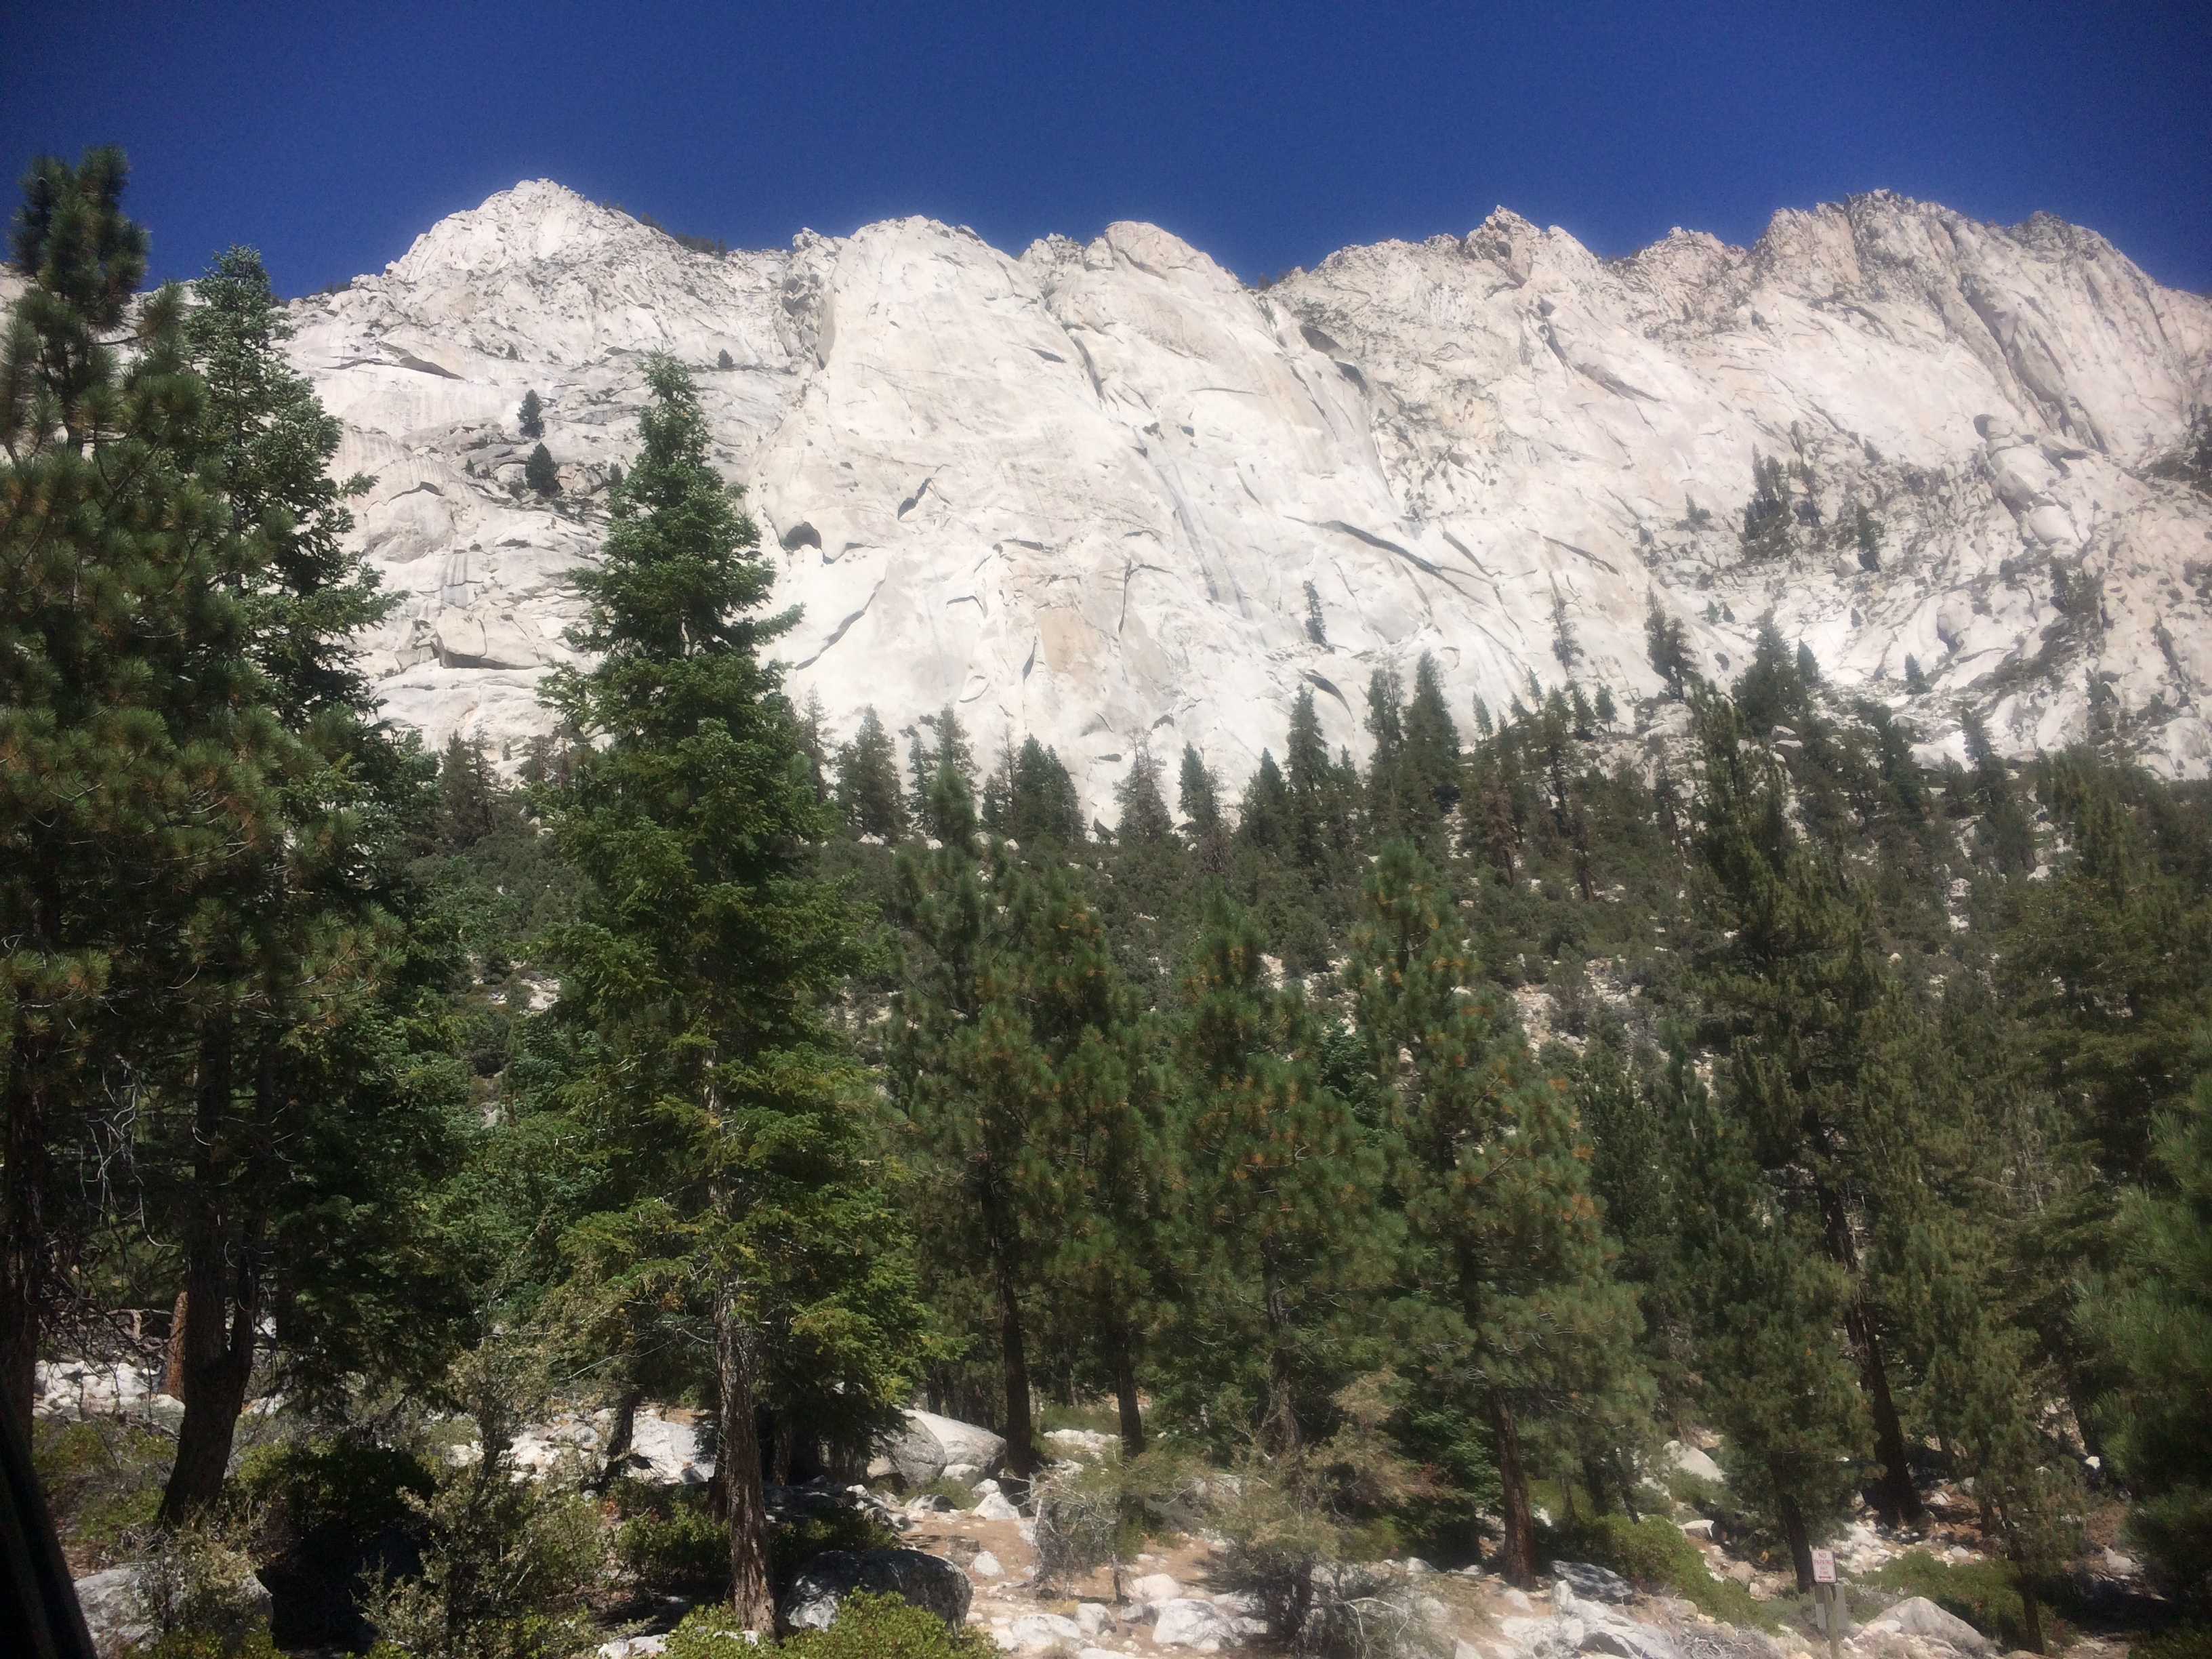 Mount Whitney view from parking lot